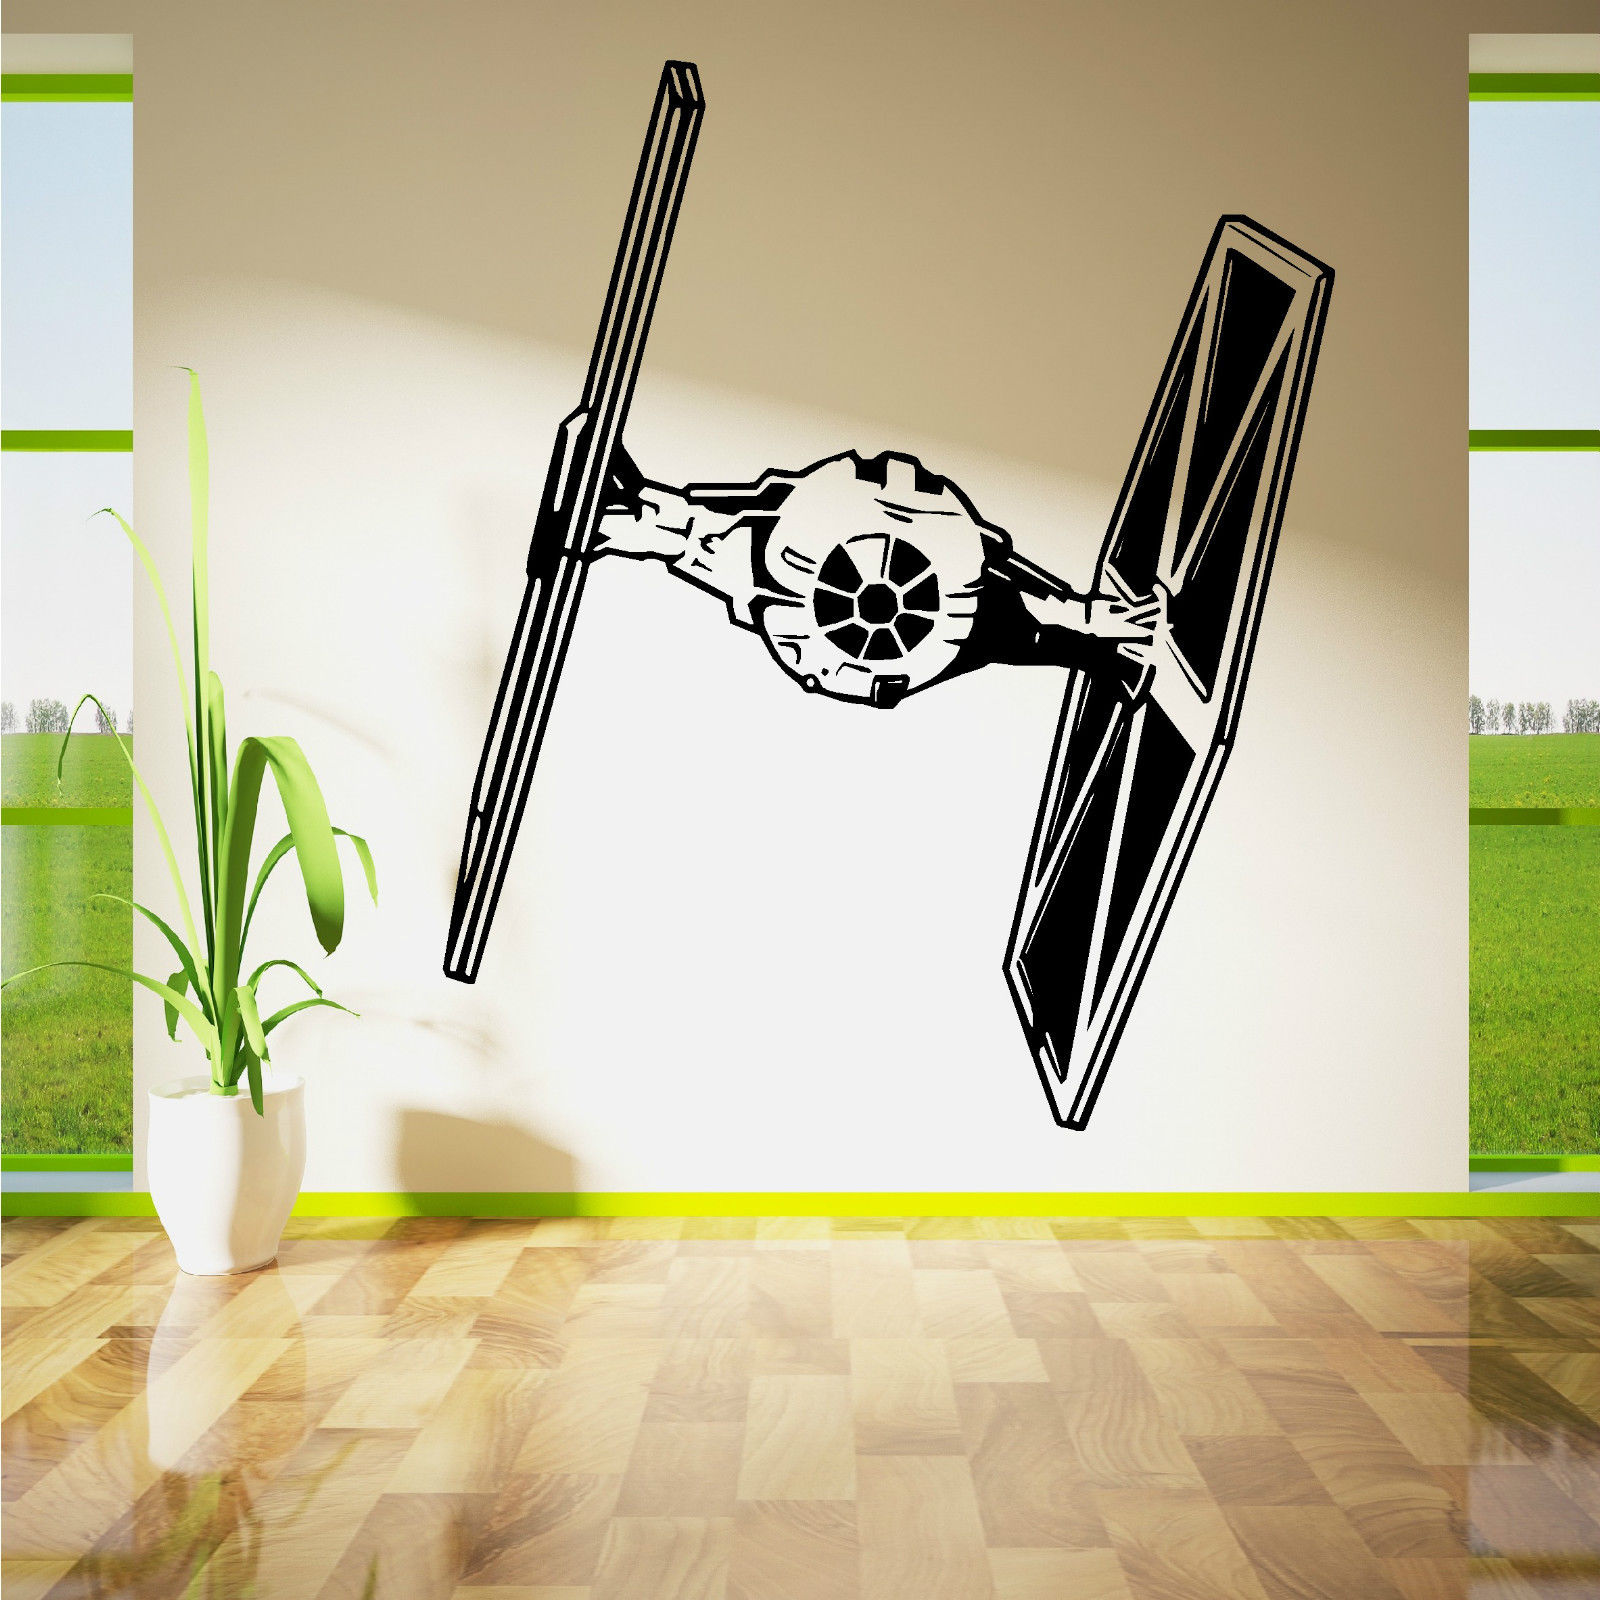 D270 star wars tie fighter wall art vinyl sticker room removable easily adhesive straight to the wall door mirror or any smooth surface you want made with high quality removable and waterproof pvc amipublicfo Choice Image